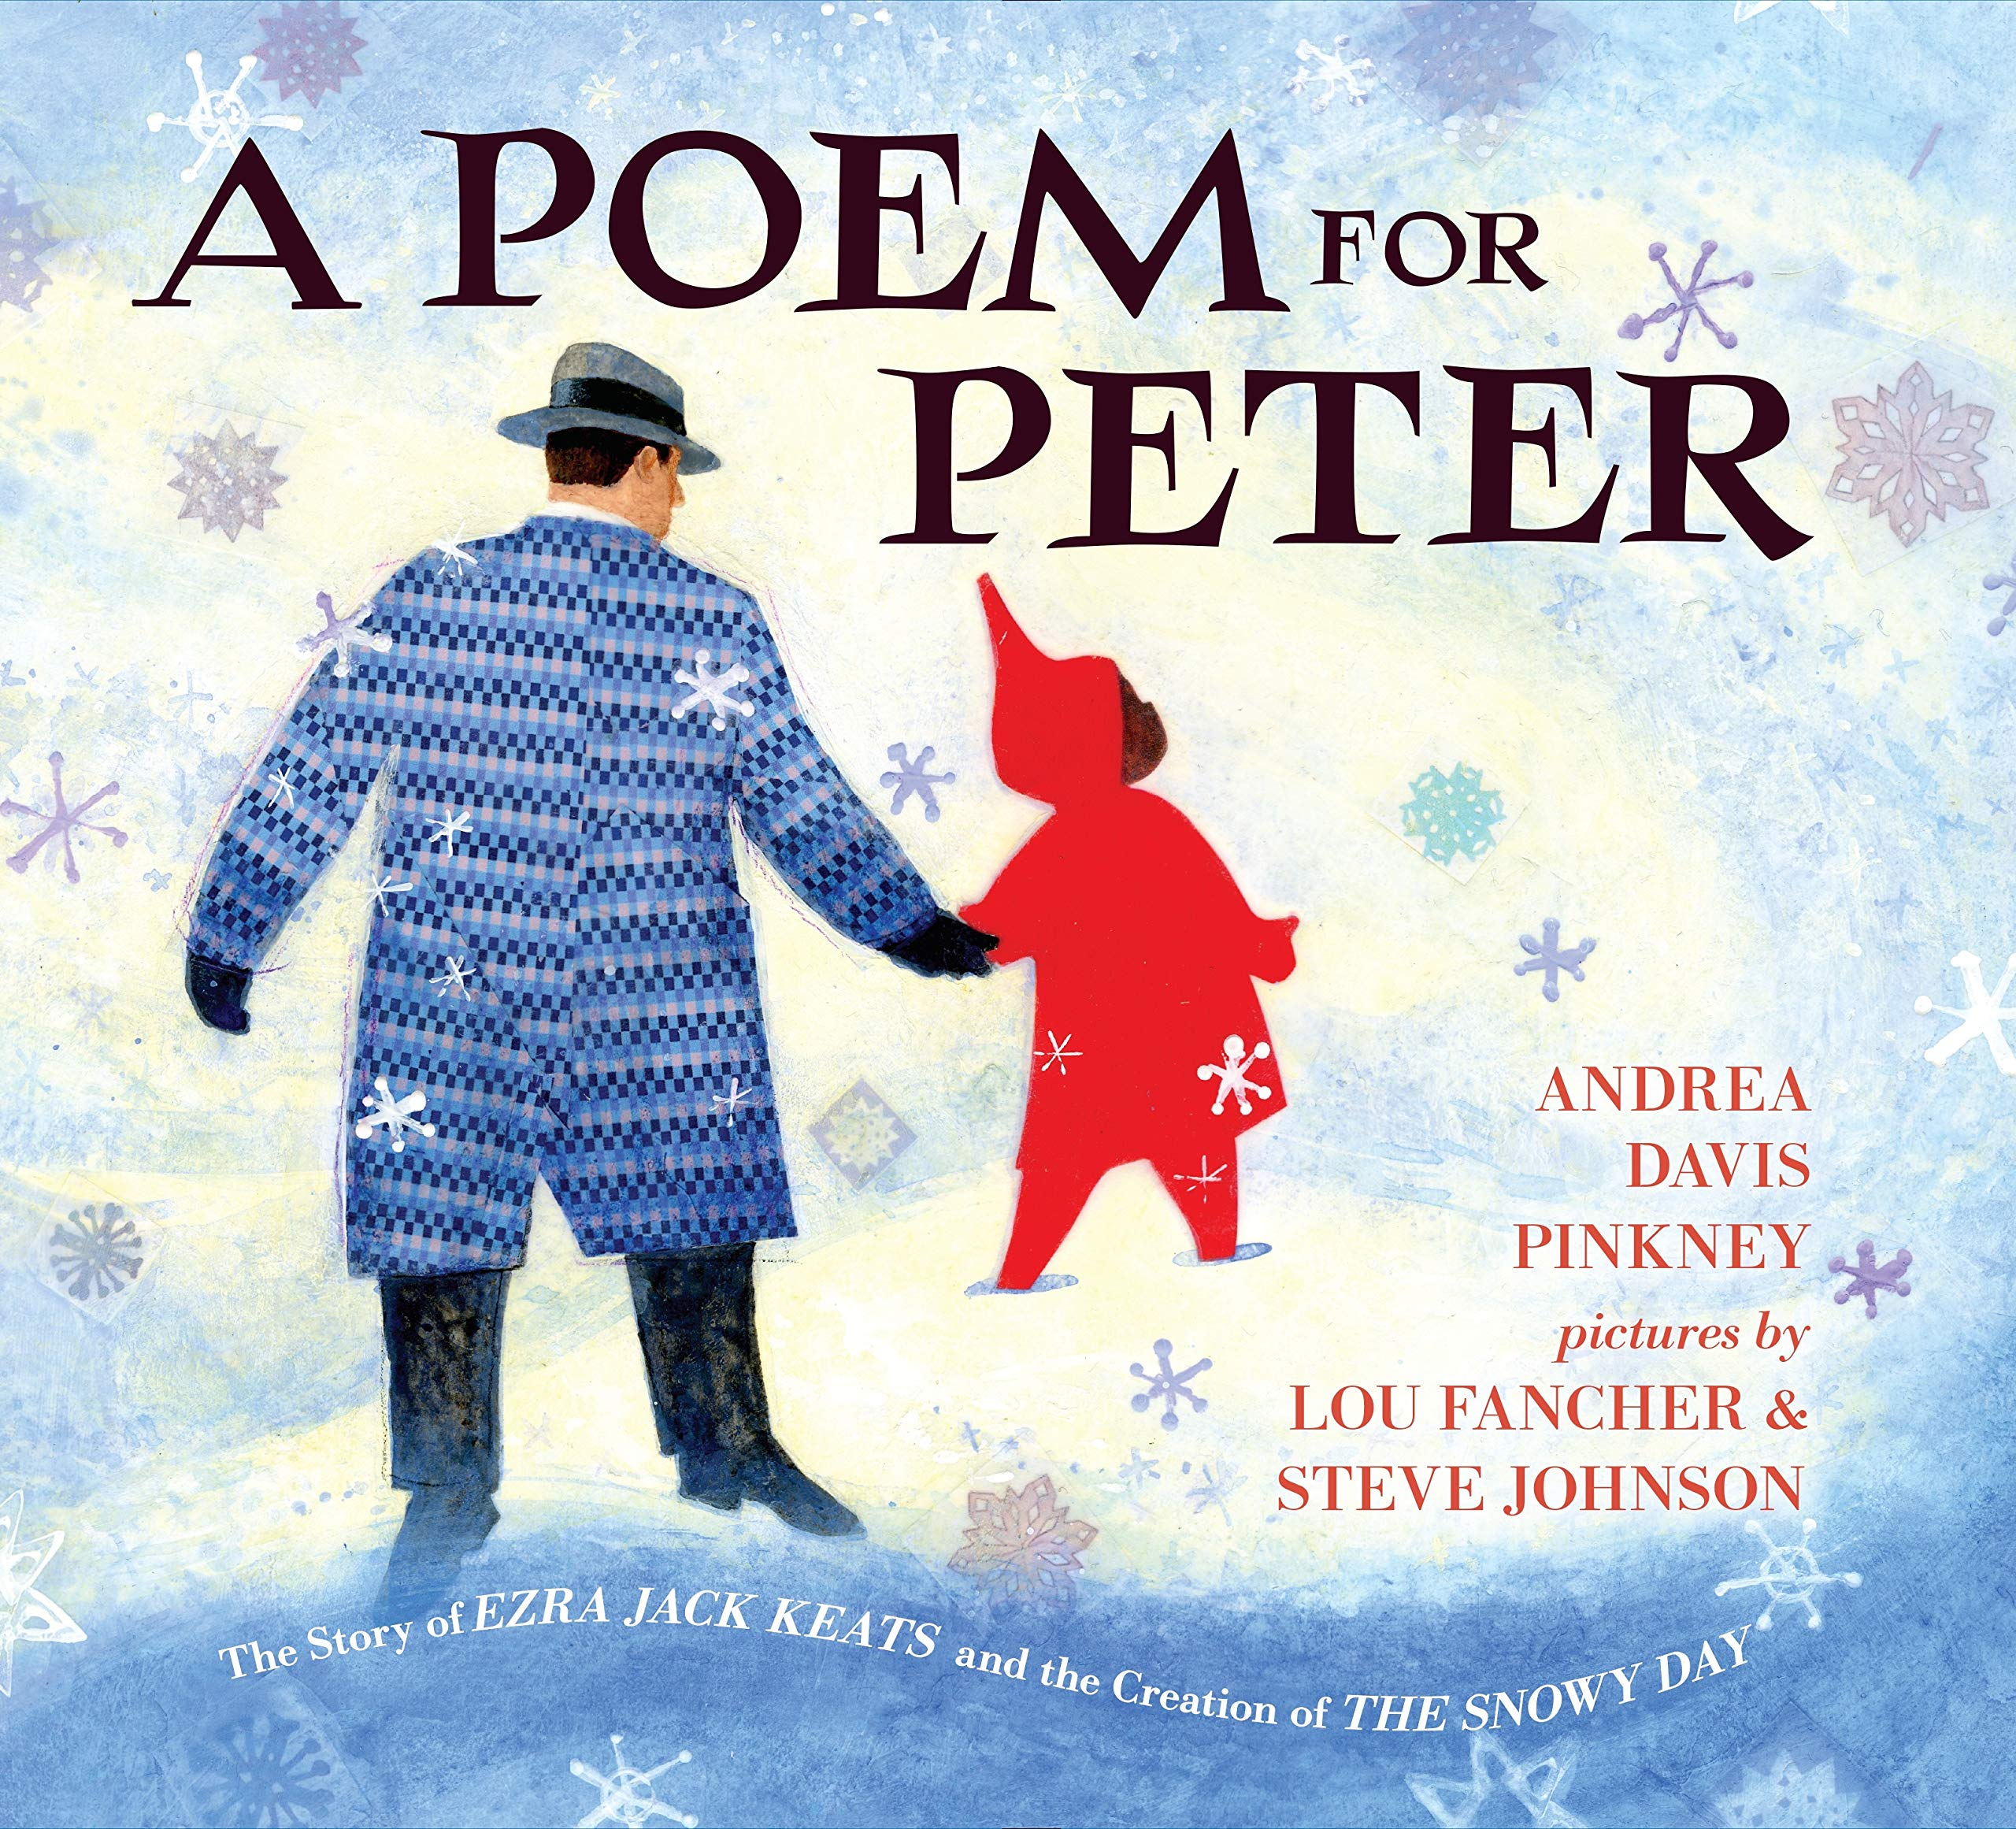 A Poem for Peter: The Story of Ezra Jack Keats and the Creation of The  Snowy Day: Pinkney, Andrea Davis, Johnson, Steve, Fancher, Lou:  9780425287682: Amazon.com: Books